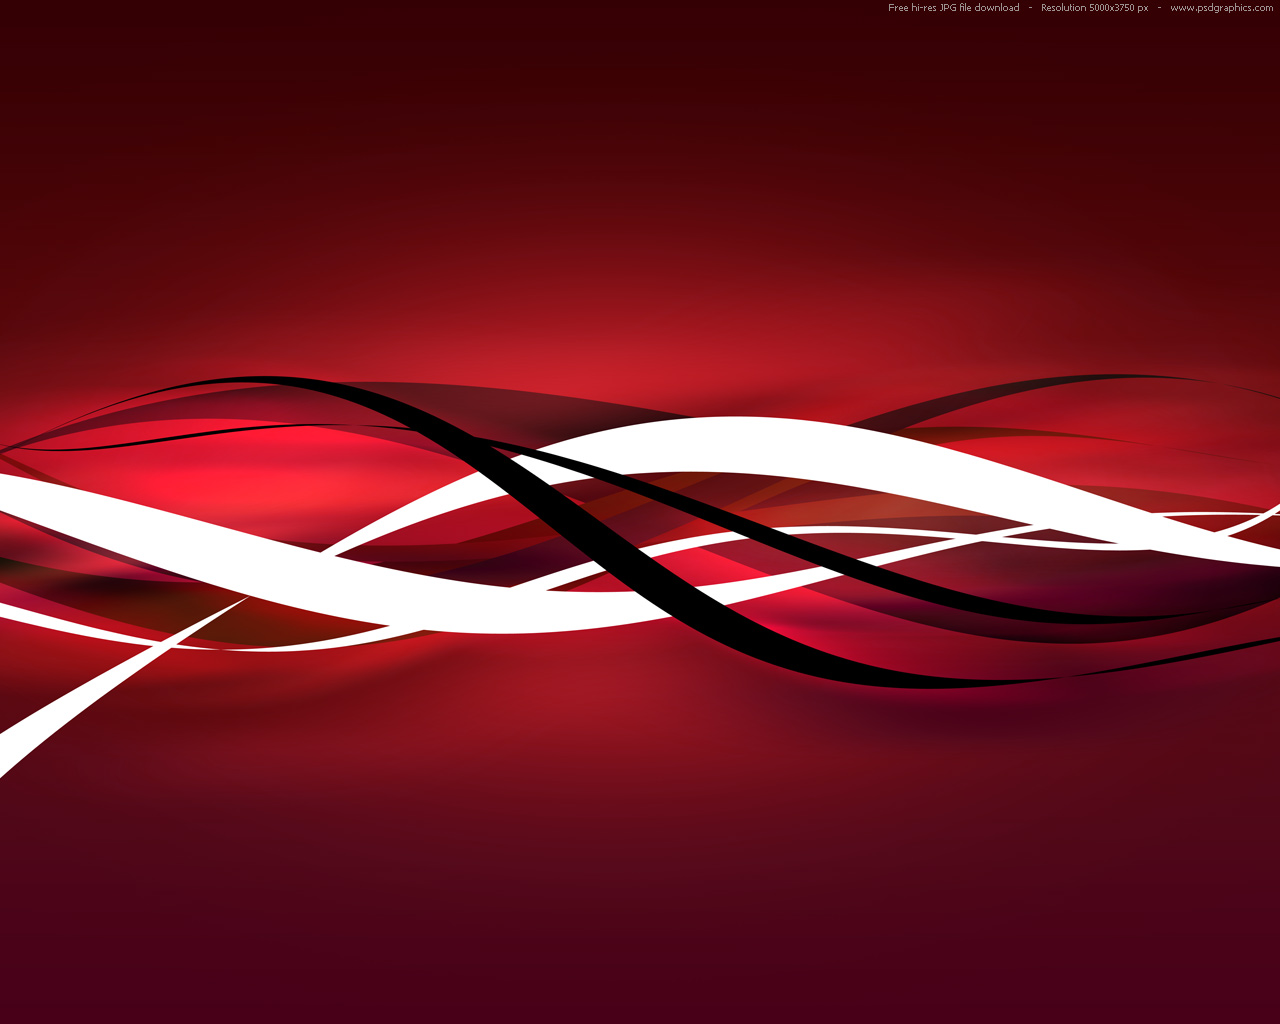 Red and black background 9 free hd wallpaper for Wallpaper three